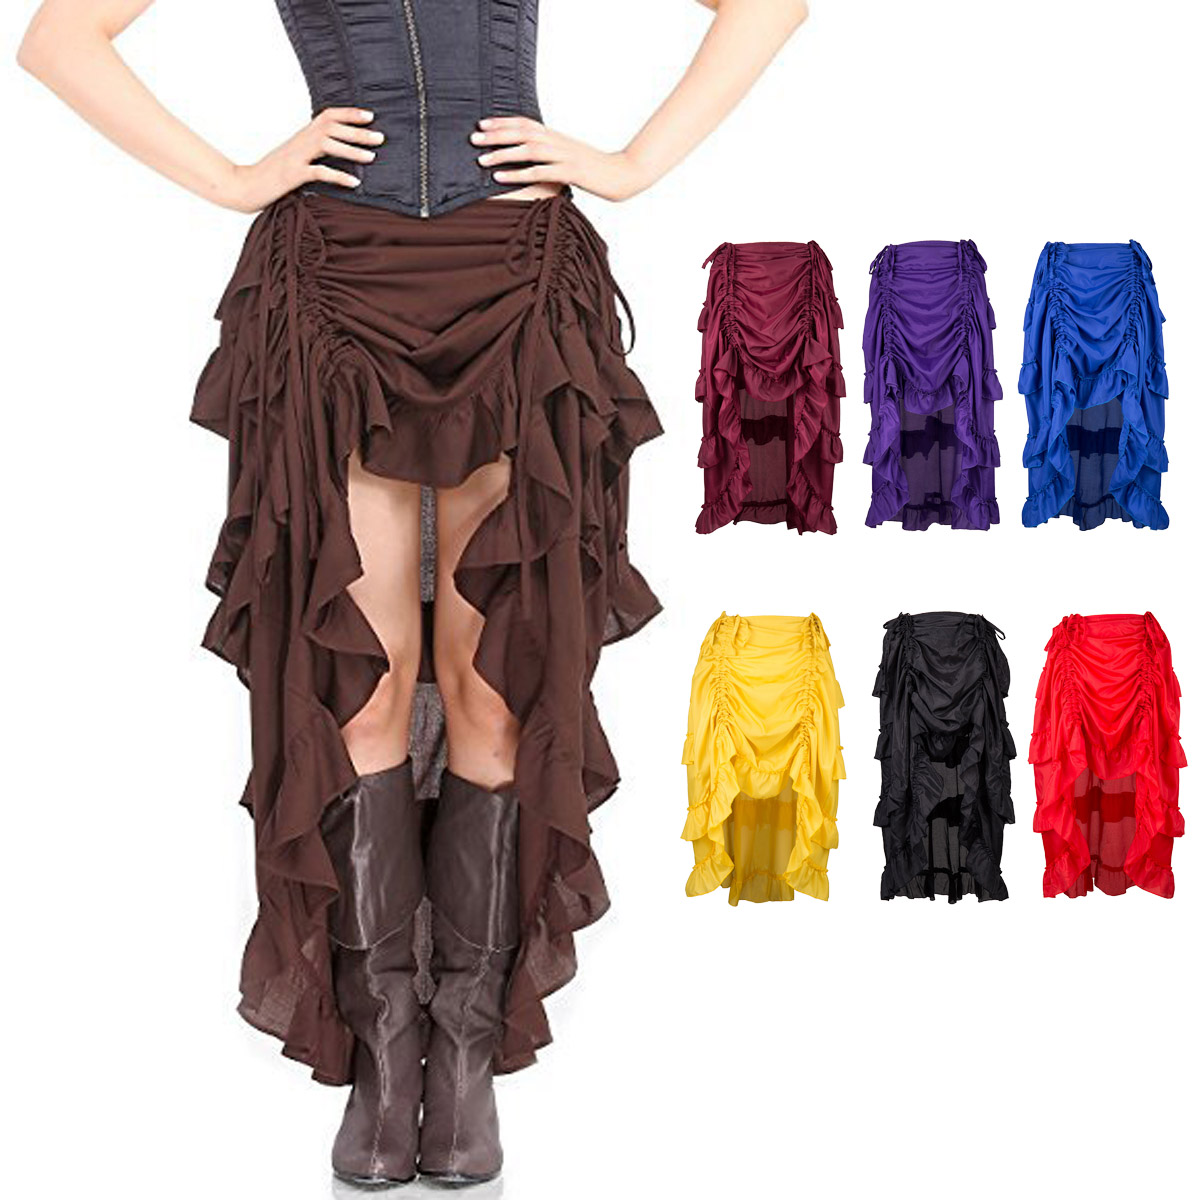 Long skirt steampunk  pirate with folds